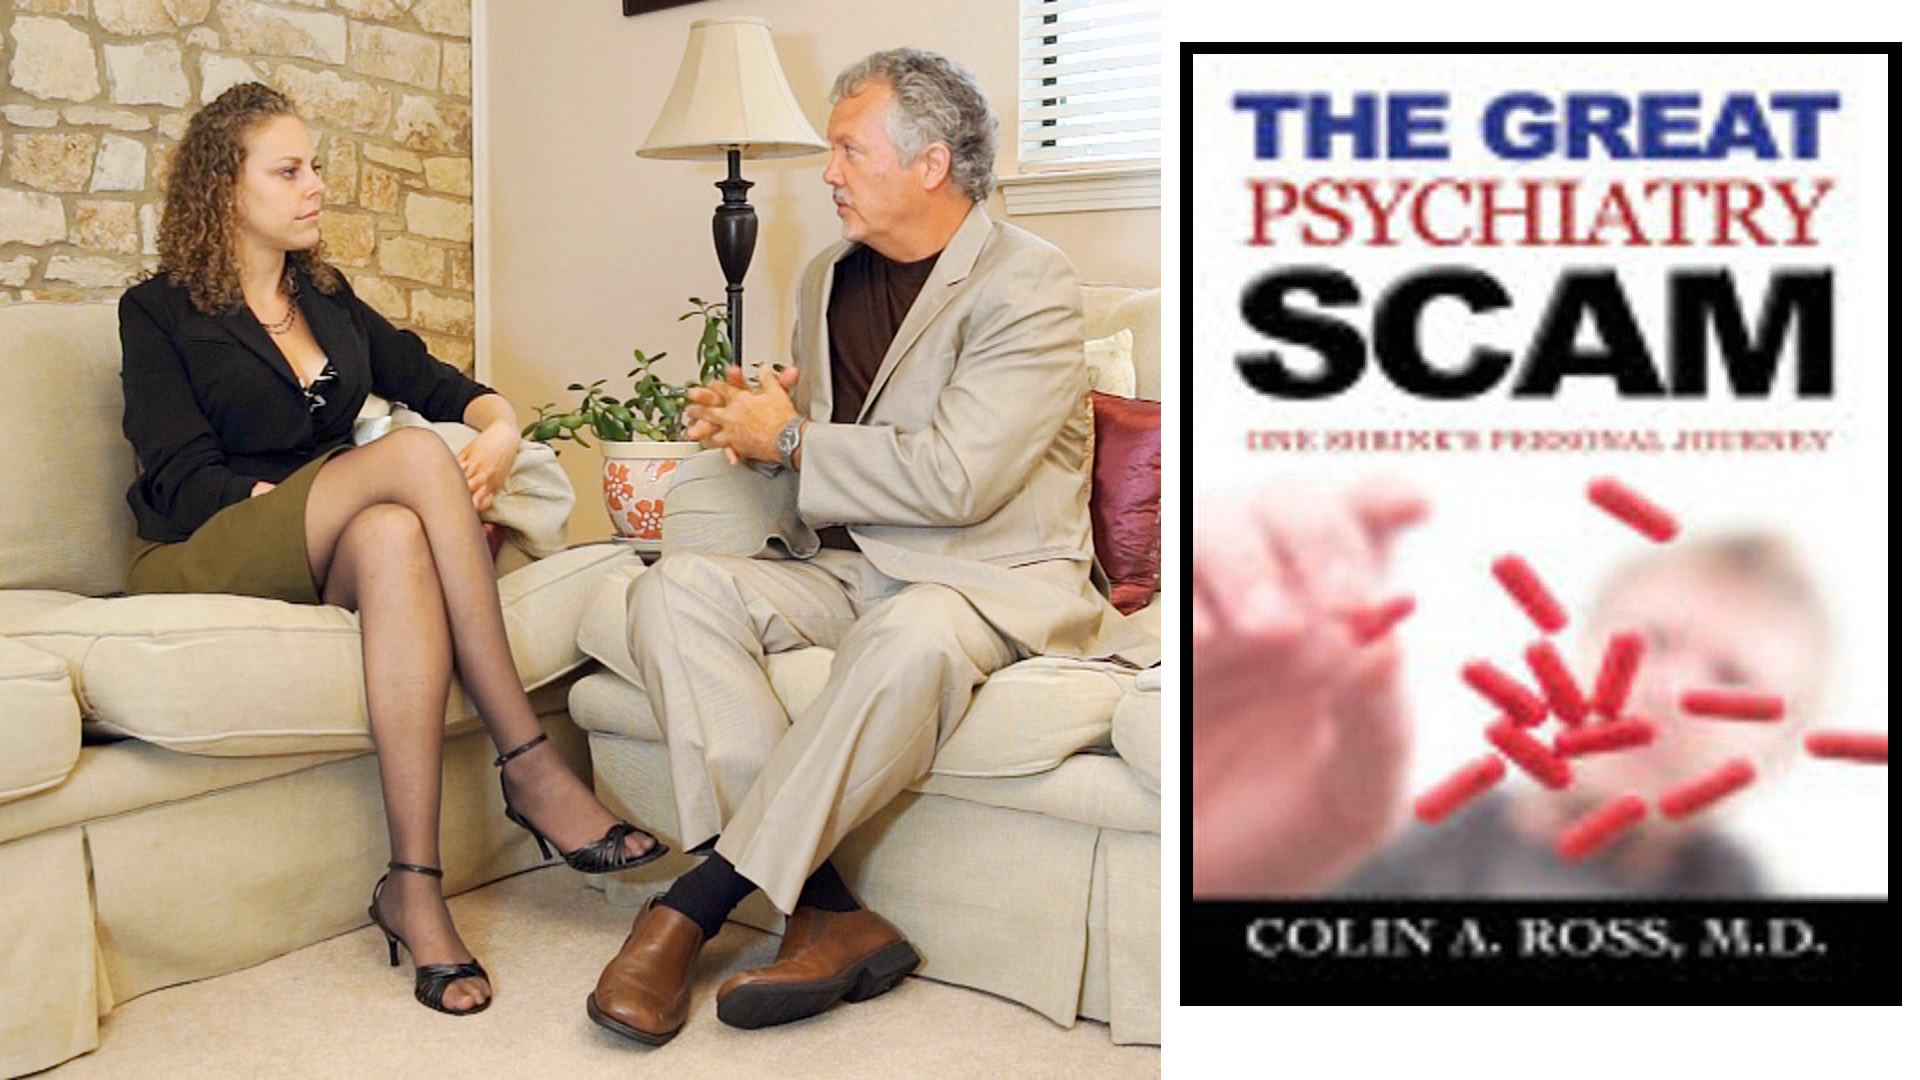 The Great Psychiatry Scam